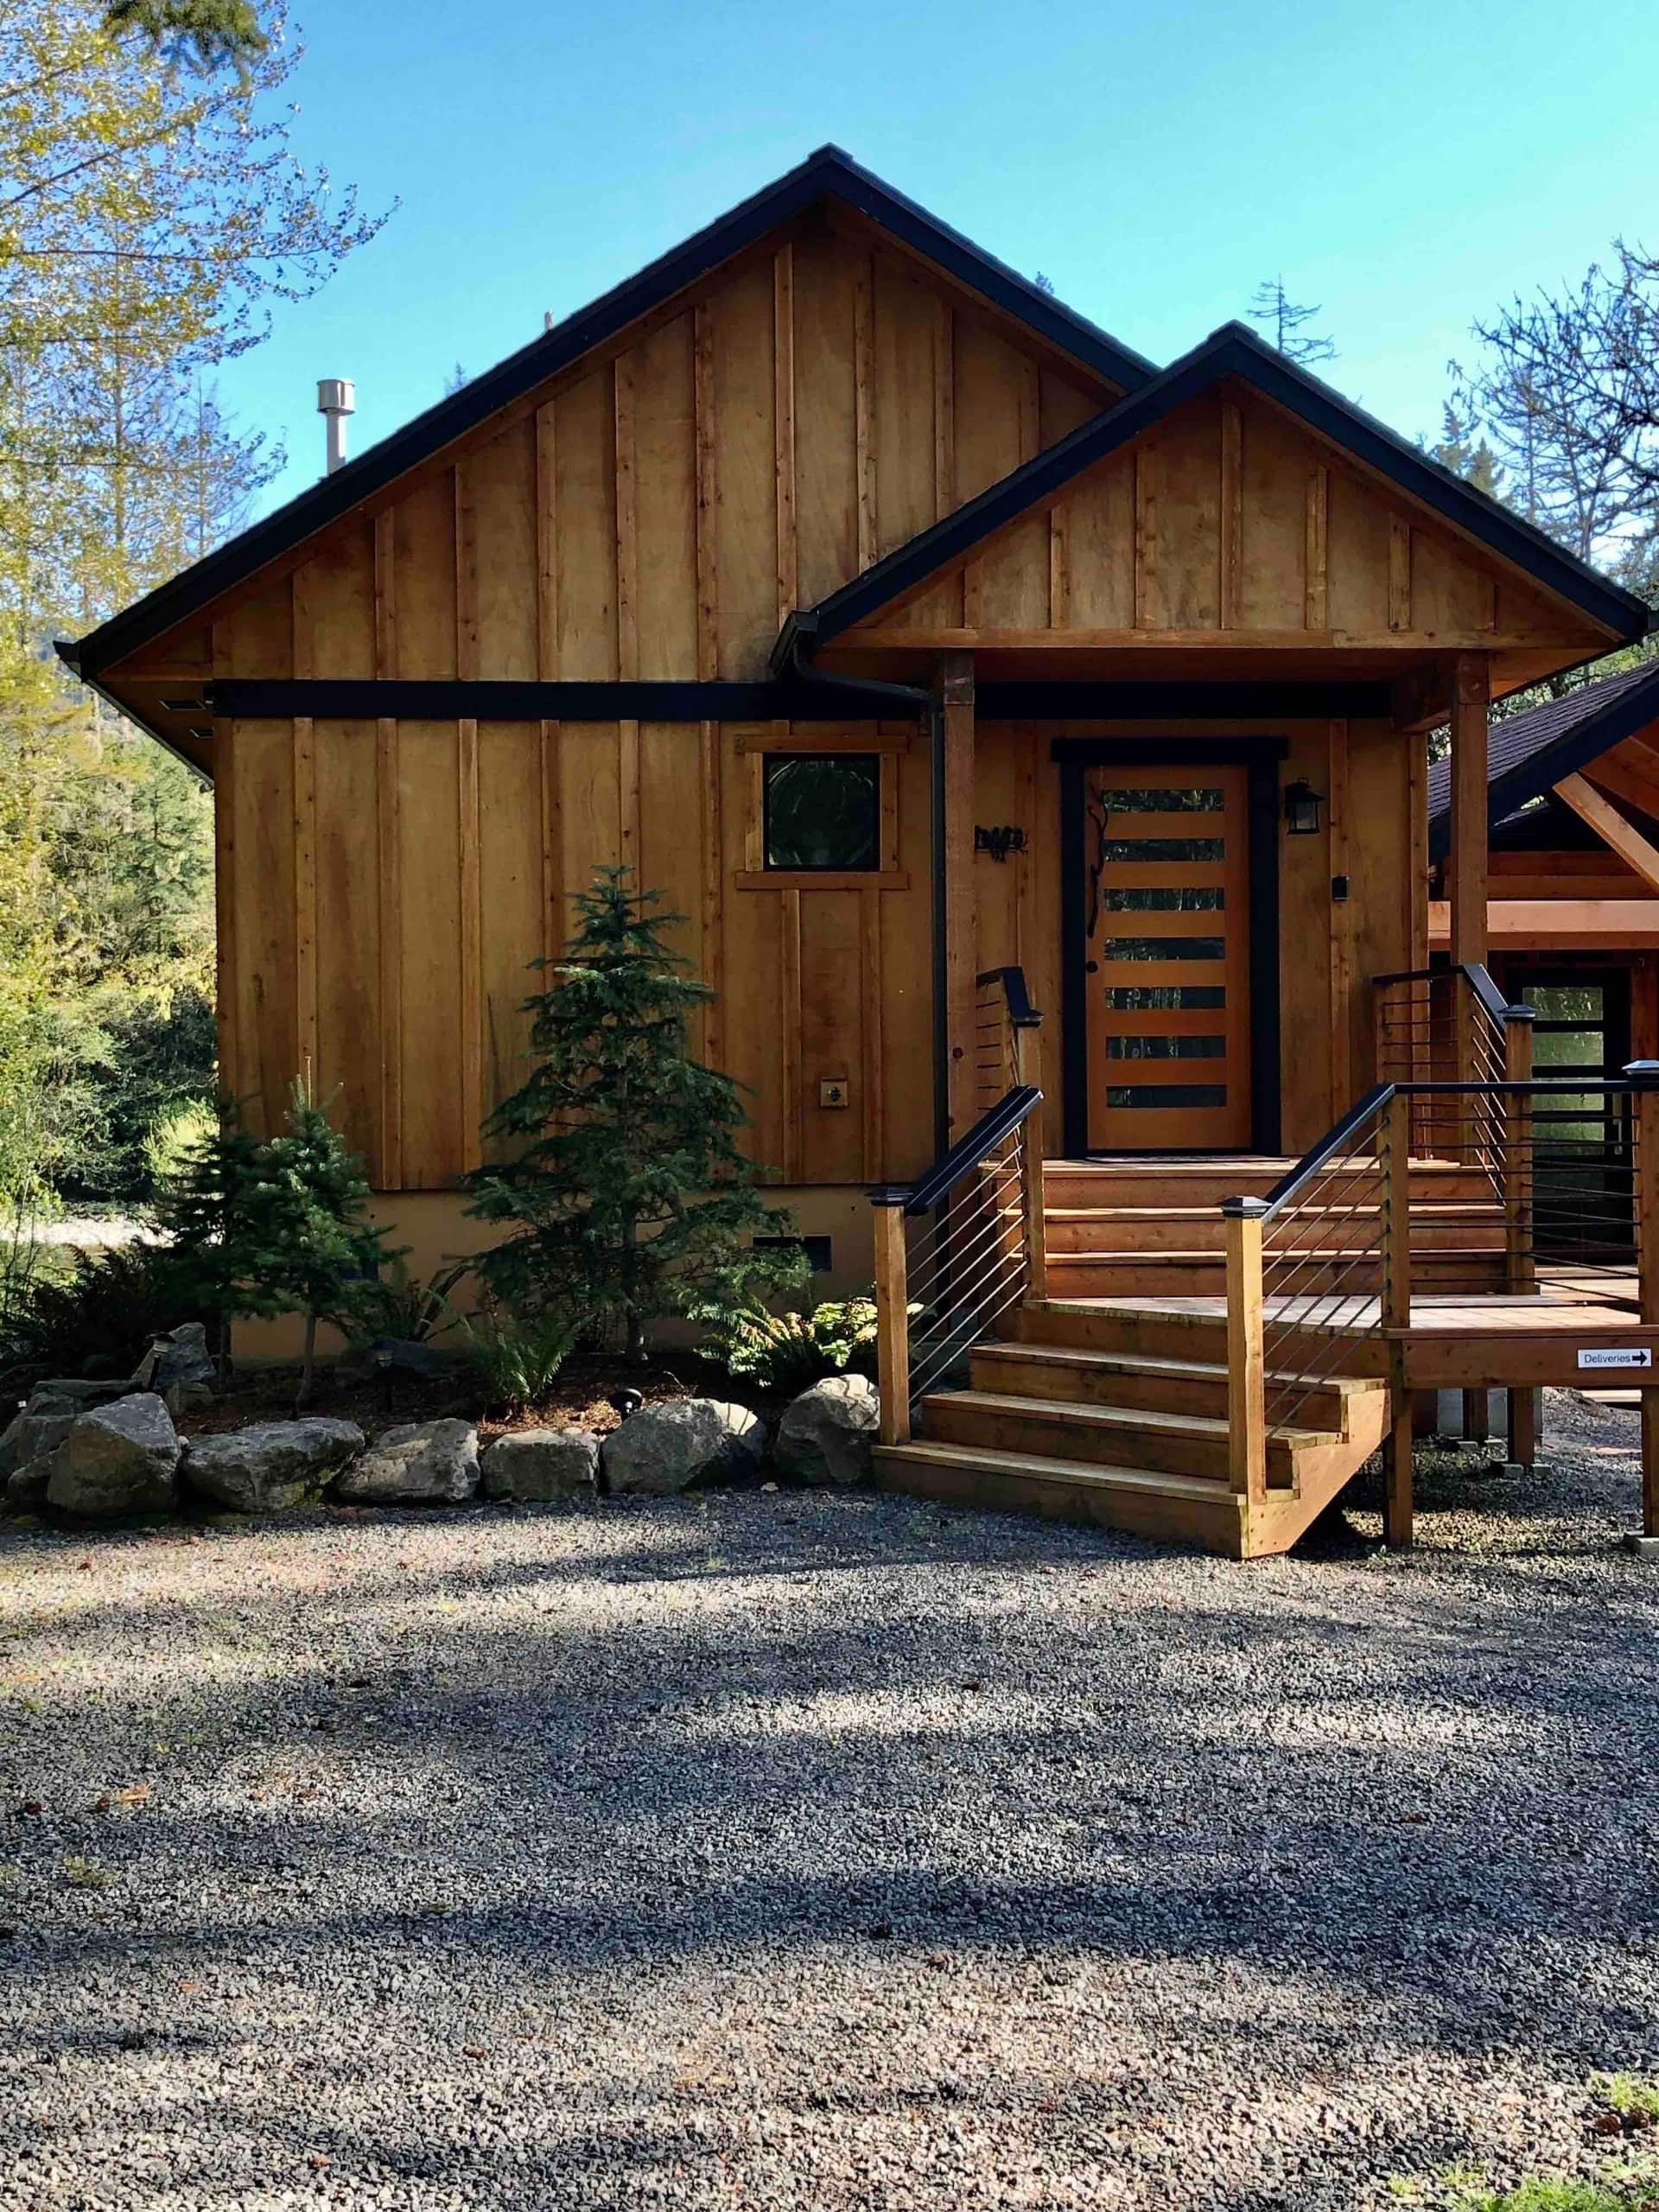 the Luxury Cabin on the Santiam River Airbnb in Oregon